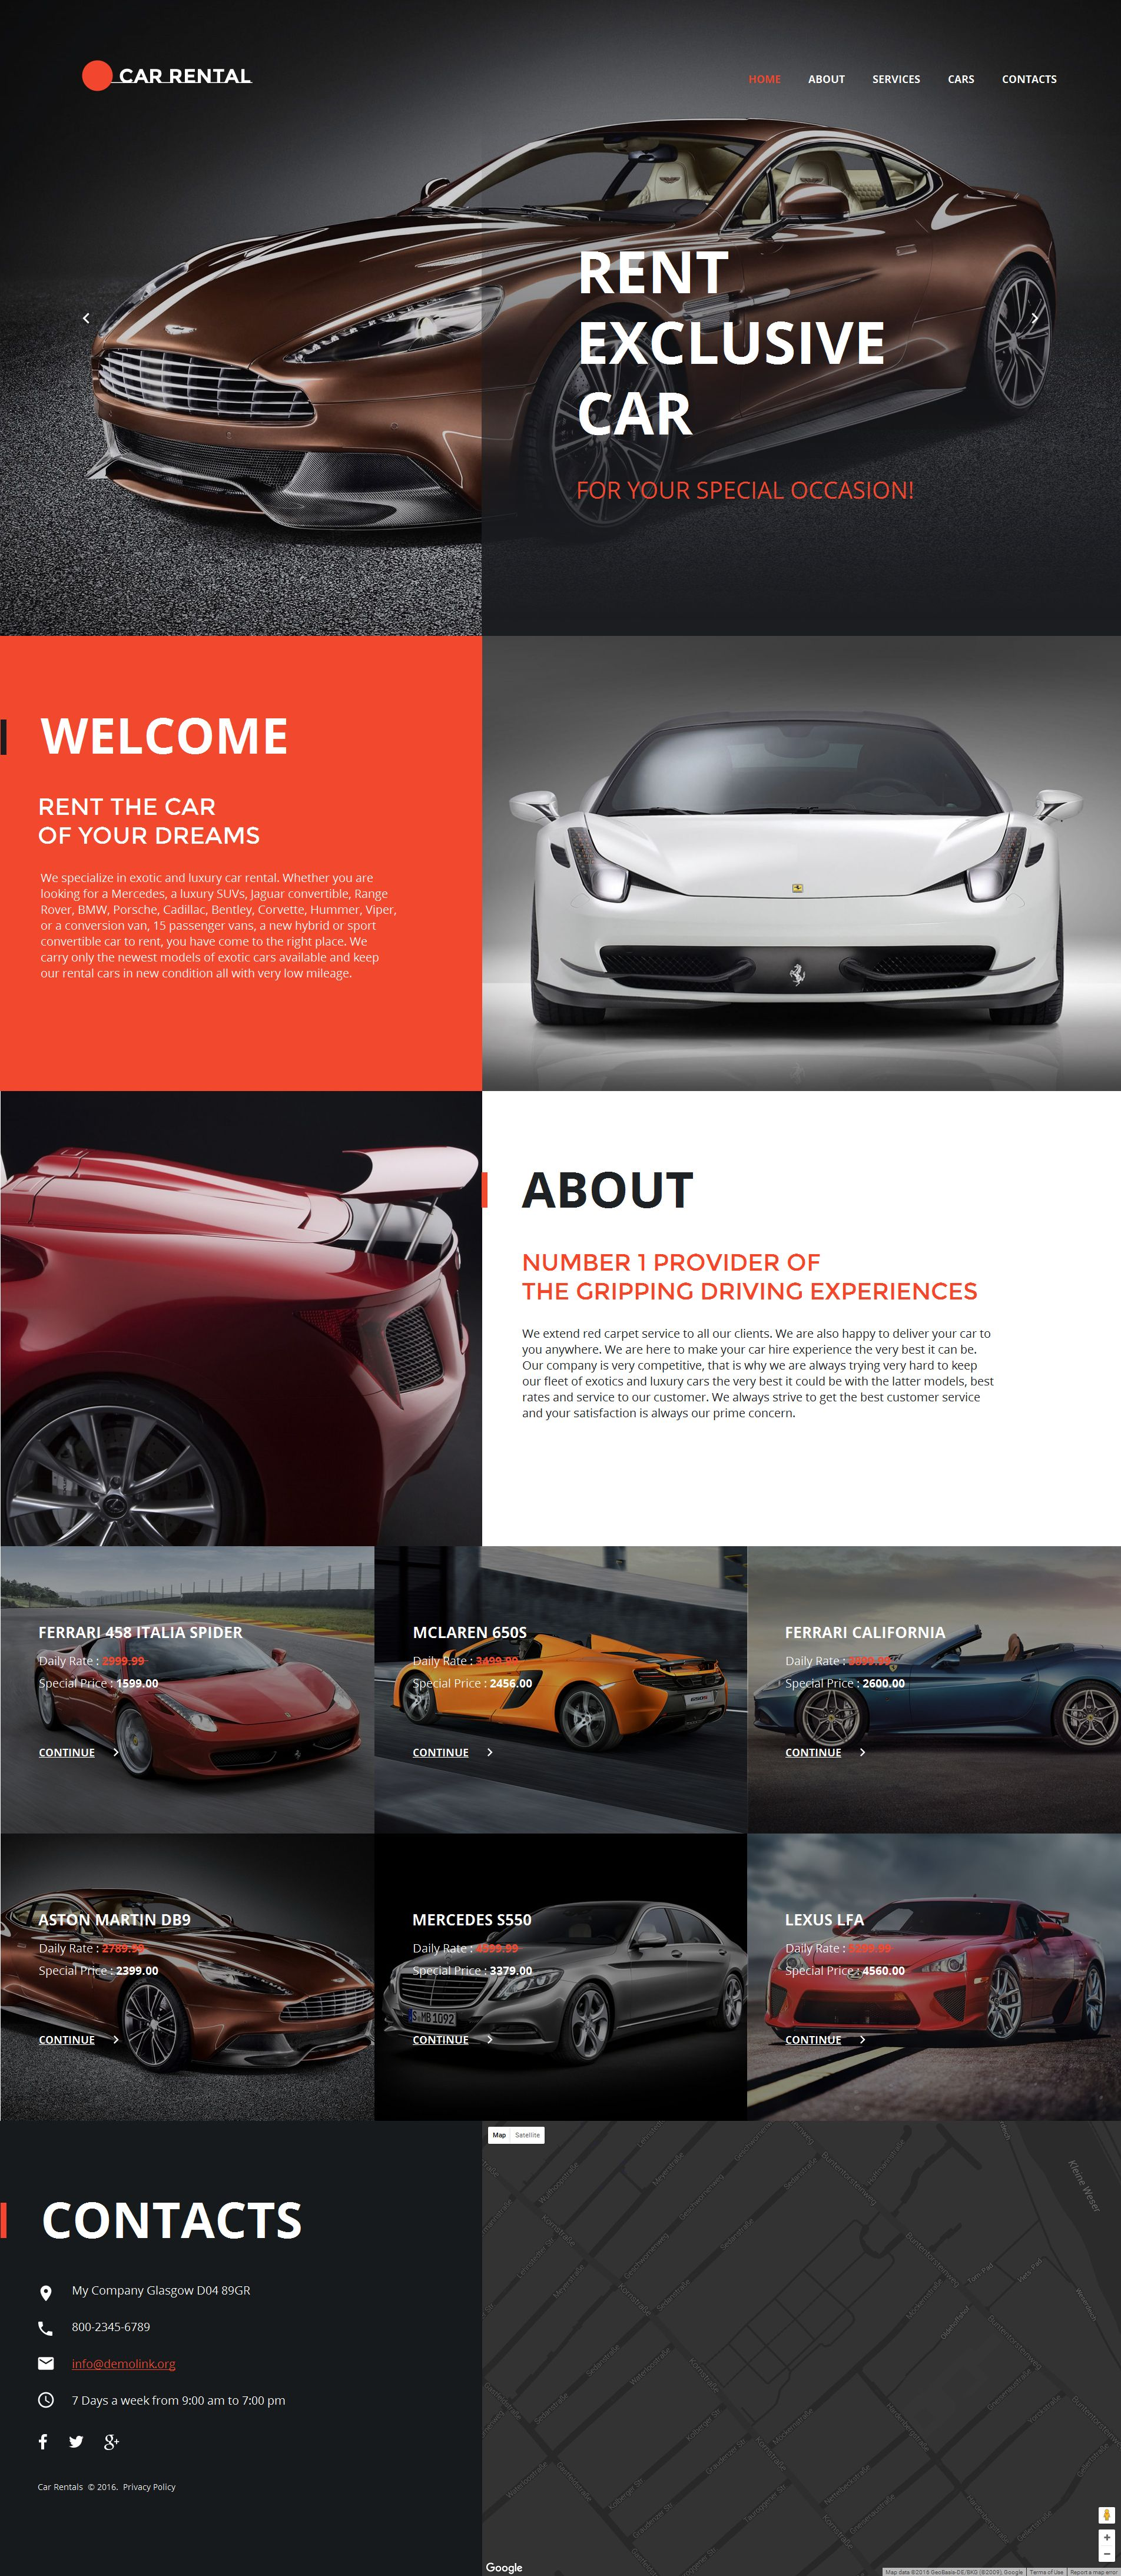 Car Rental Moto CMS HTML Template | Template, Site design and Web ...